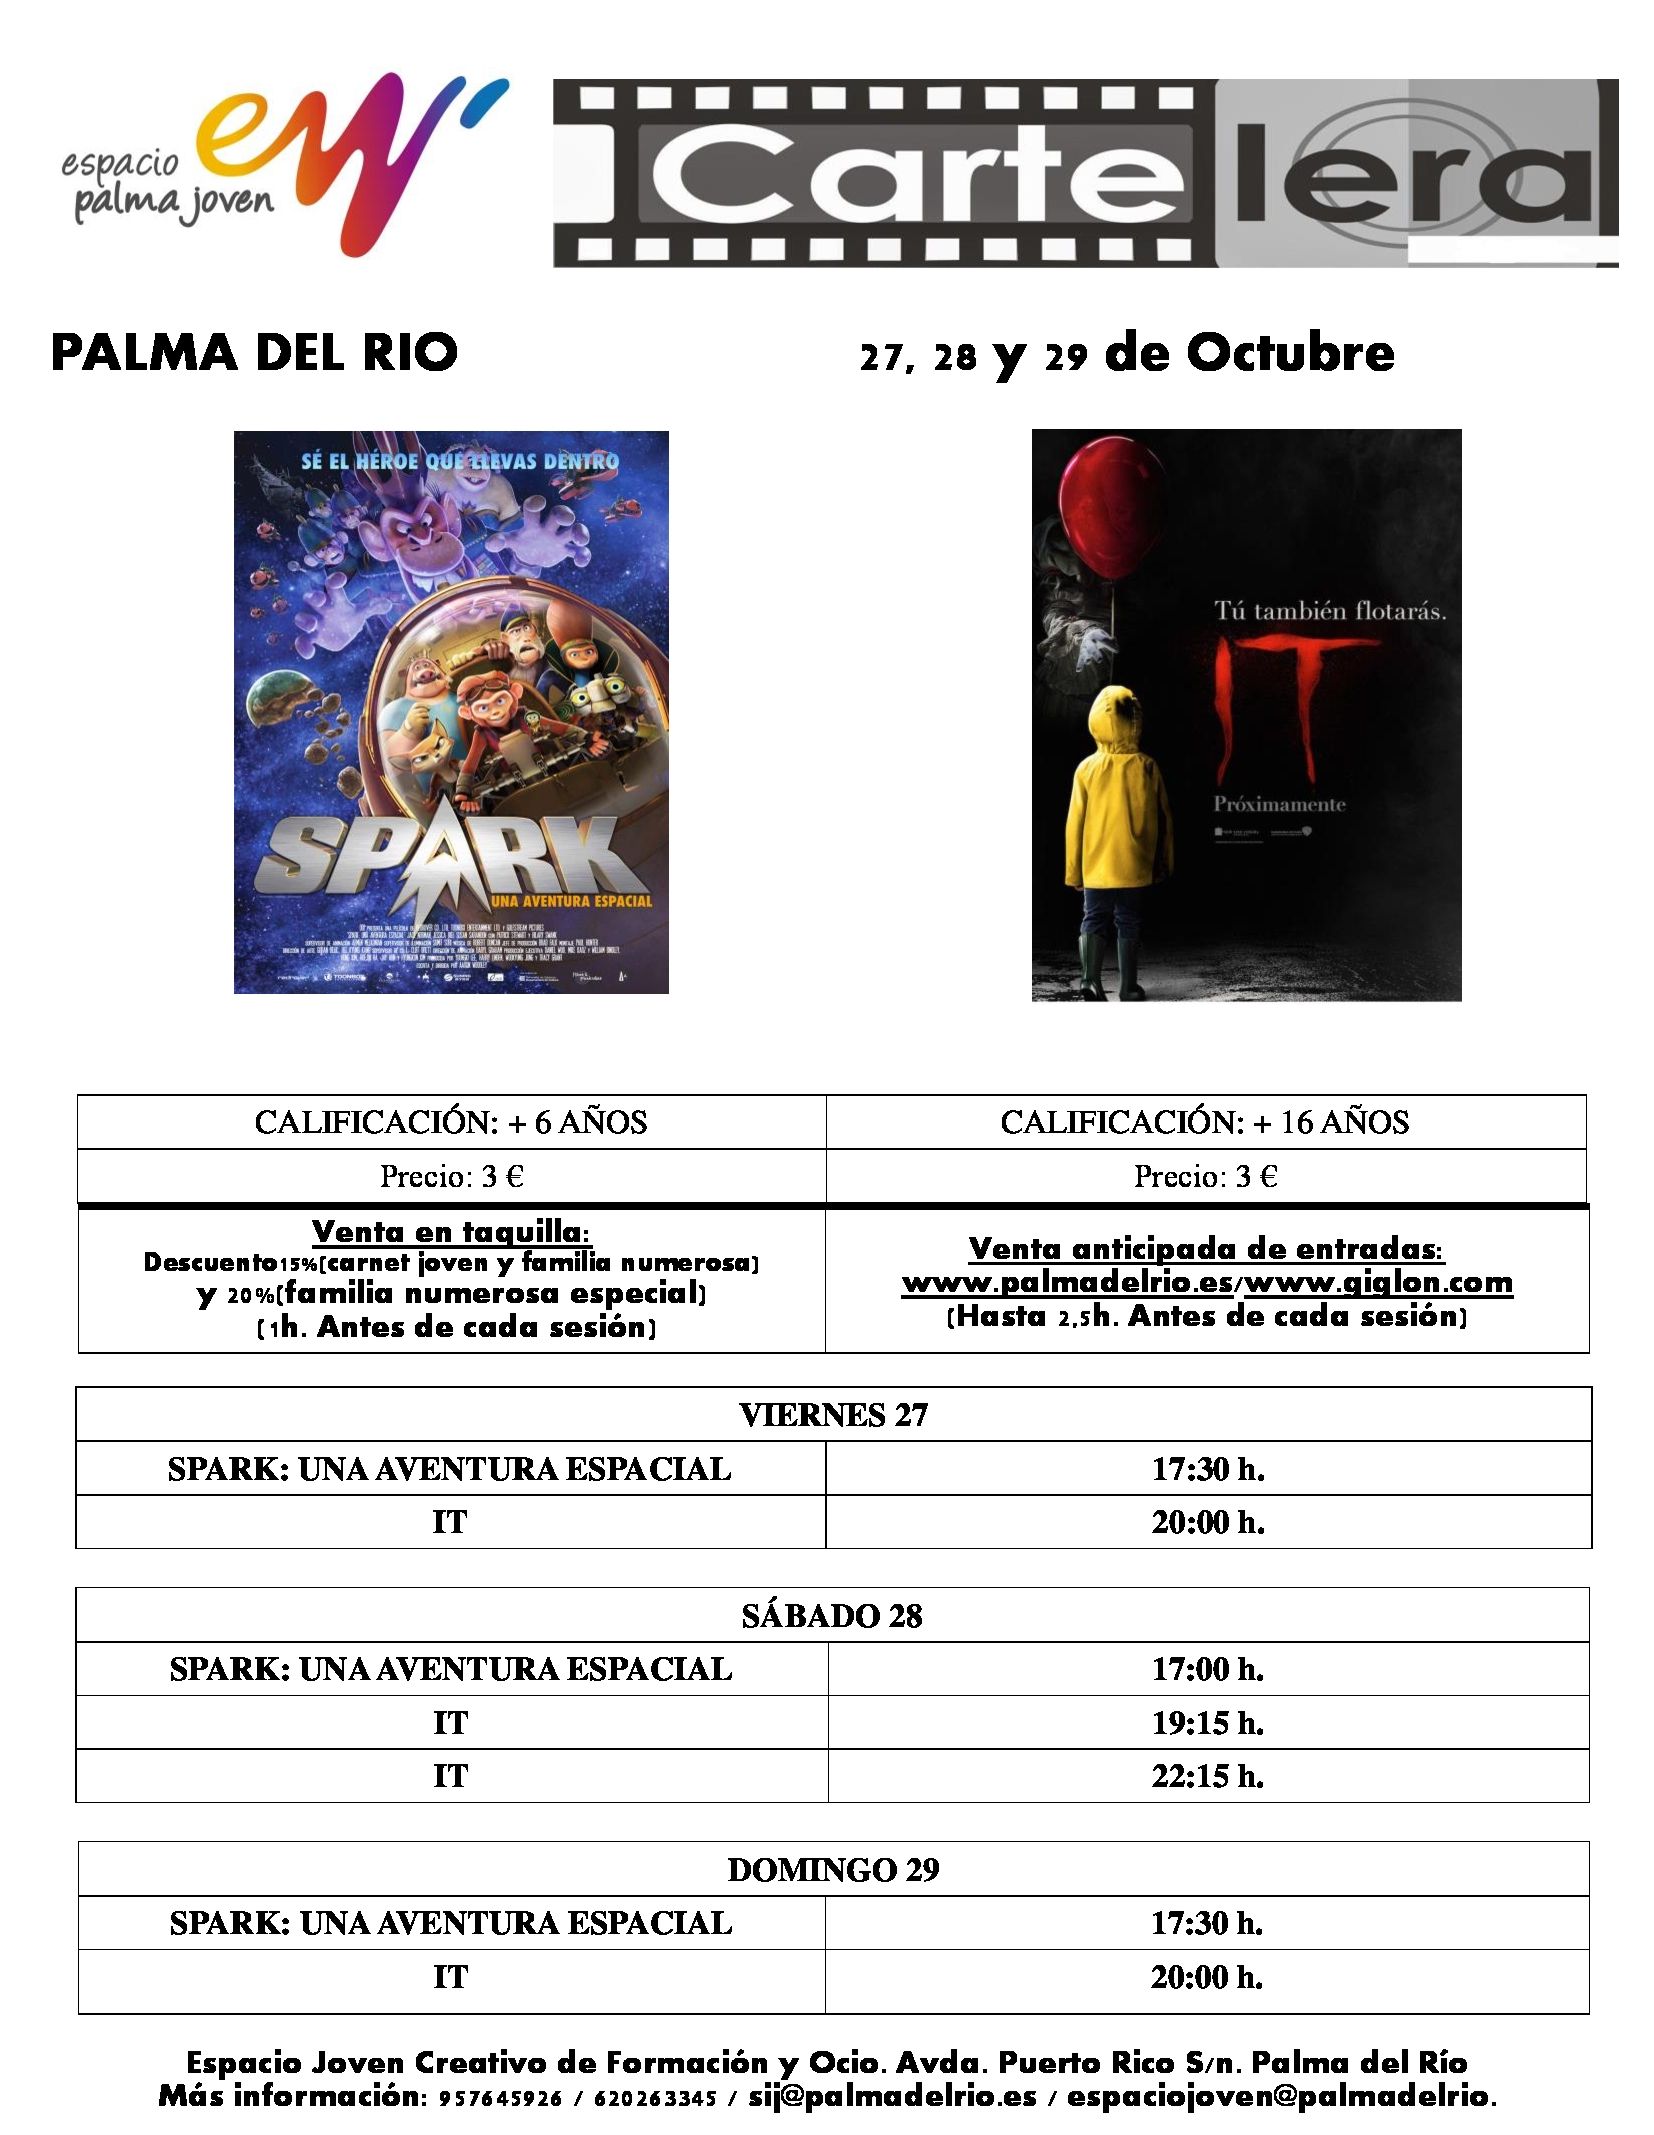 https://www.palmadelrio.es/sites/default/files/cine_27.28.29.octubre_2017.jpg